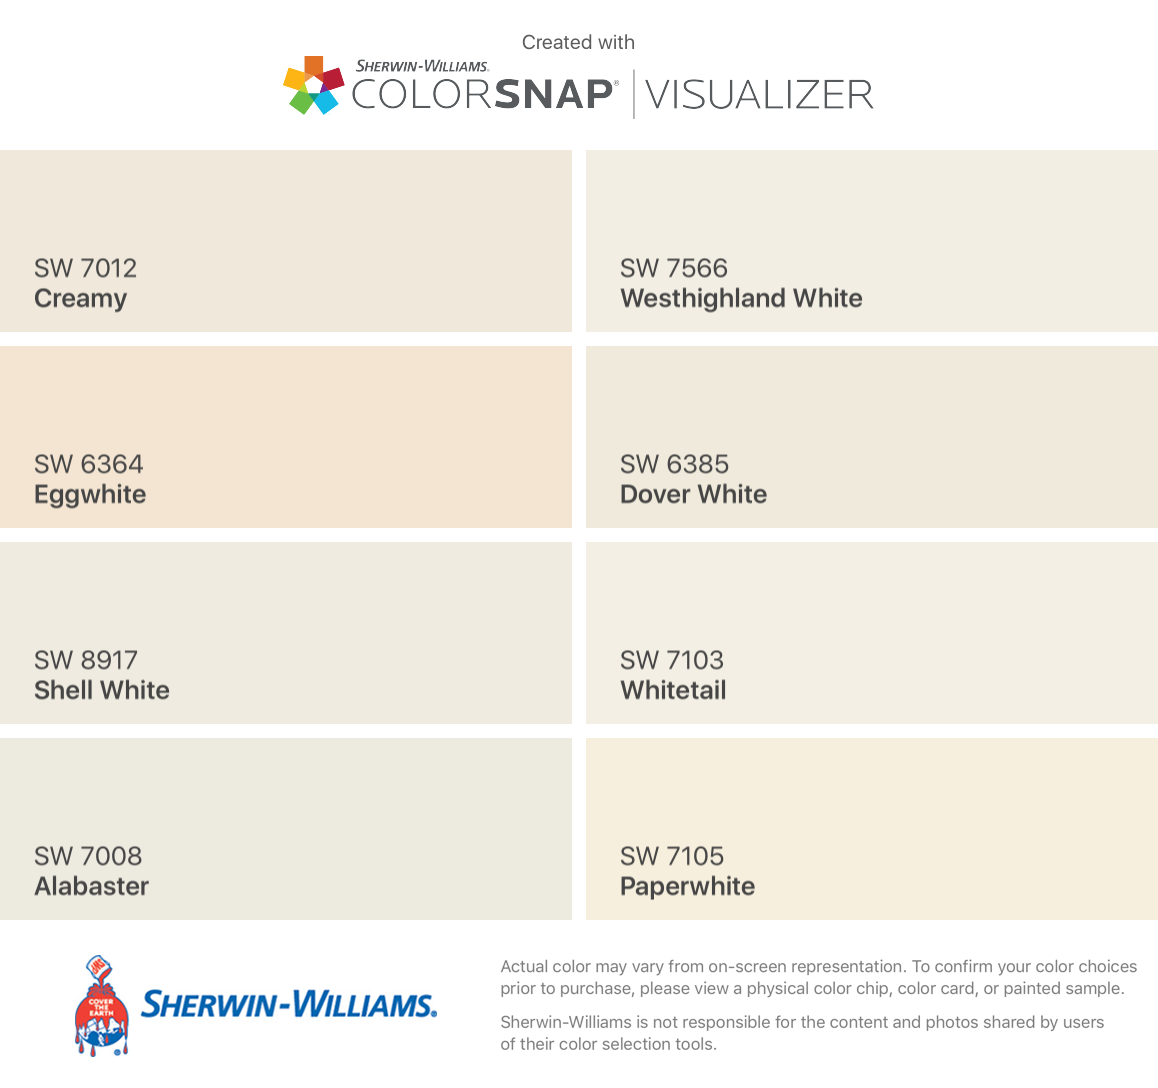 I Found These Colors With Colorsnap Visualizer For Iphone By Sherwin Williams Cre Sherwin Williams White